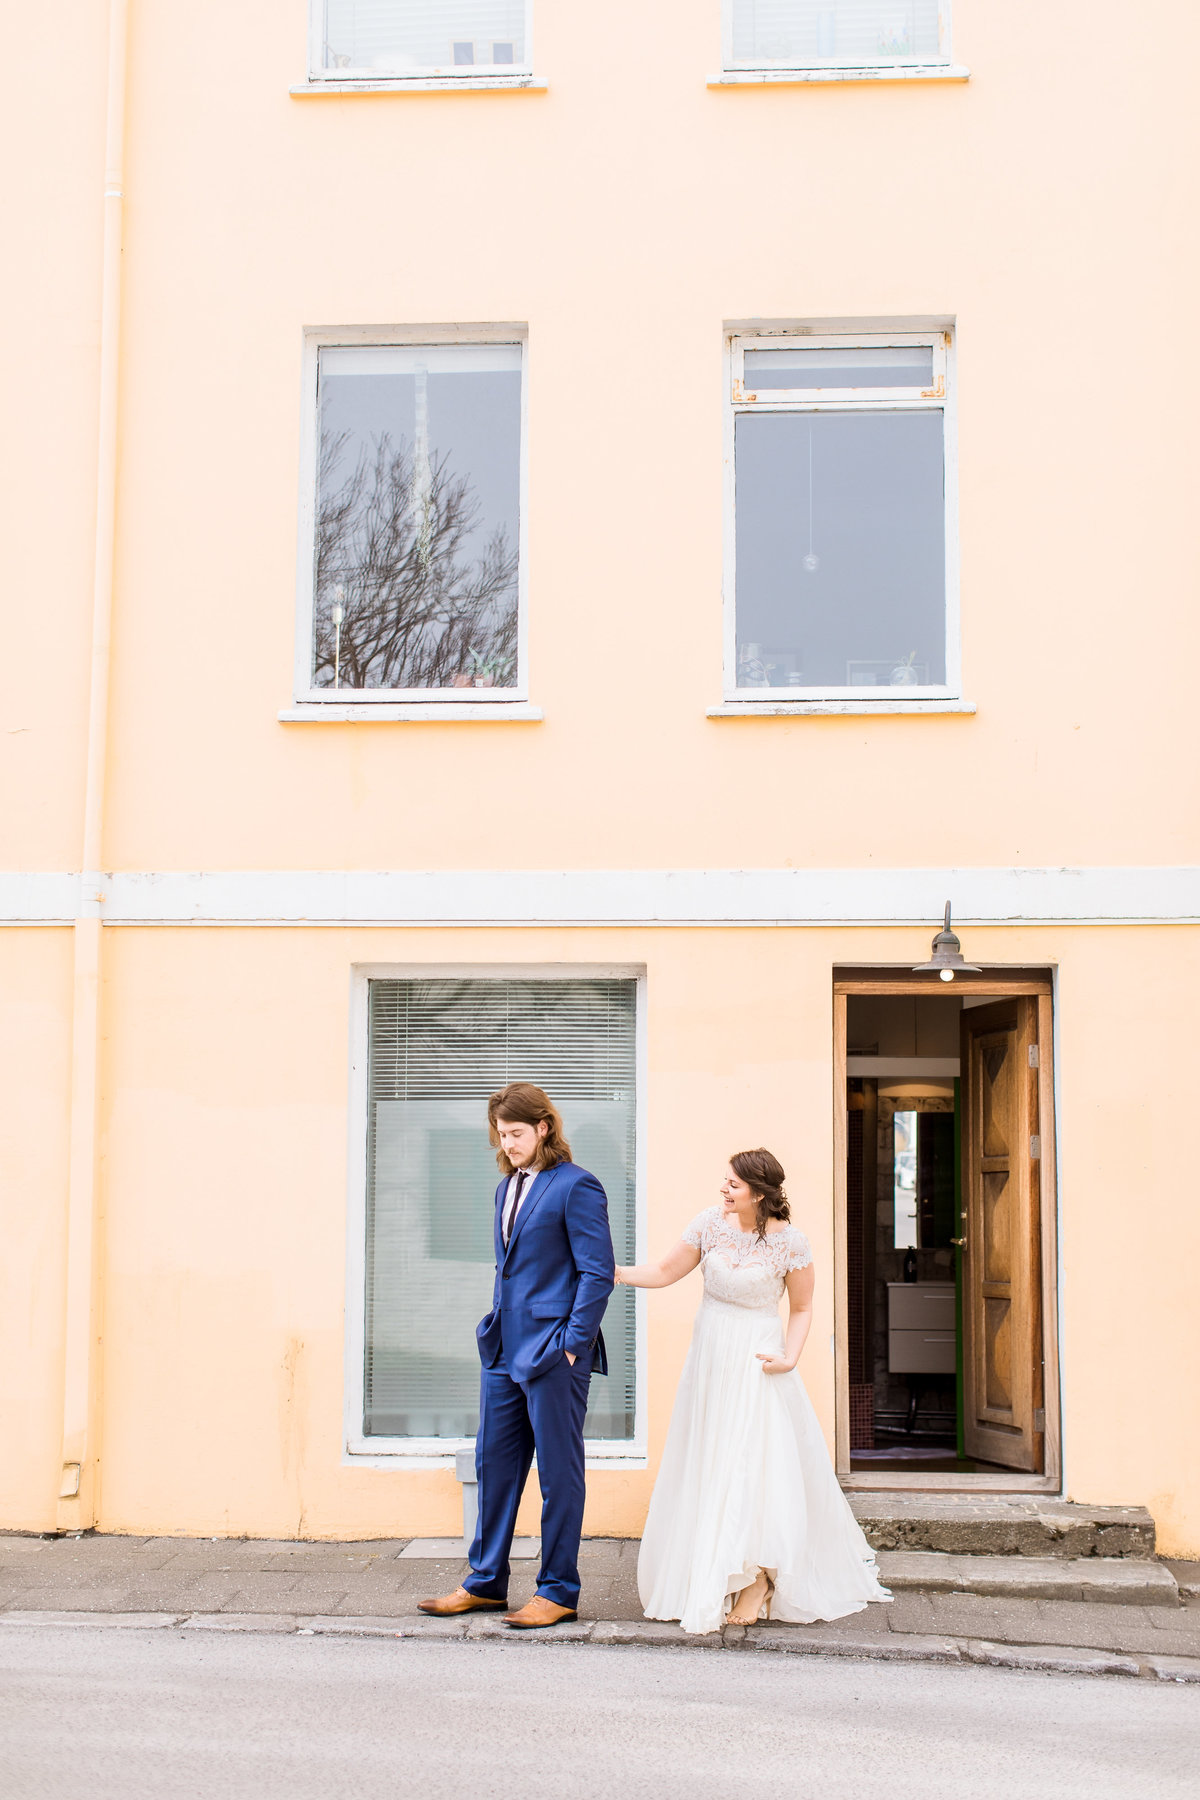 IcelandWedding_OliviaScott_DestinationWedding_CatherineRhodesPhotography-132-Edit